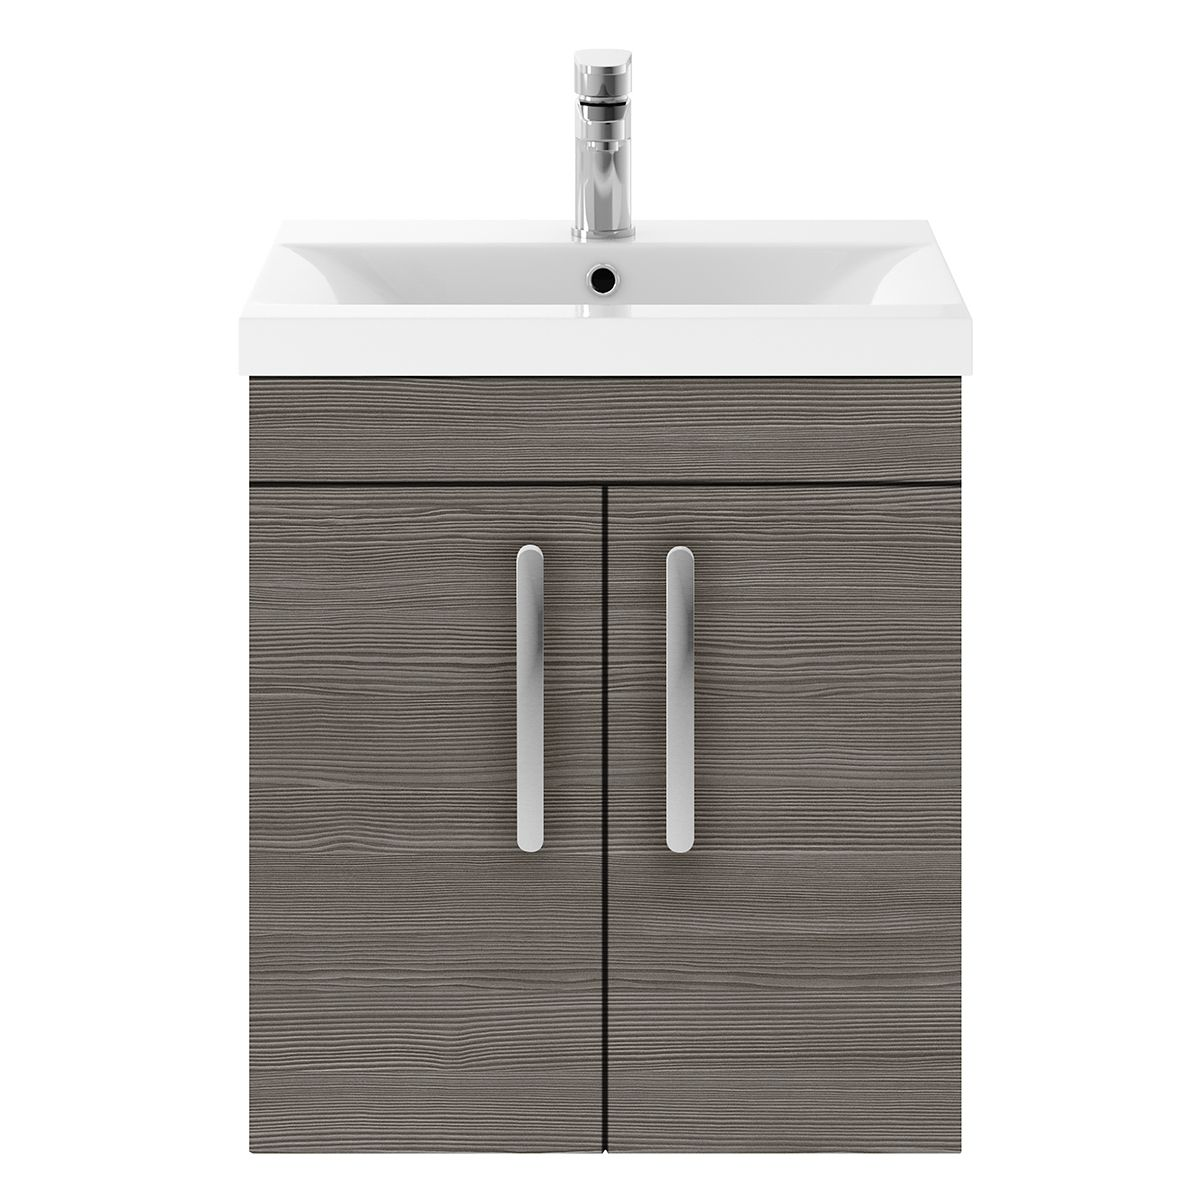 Nuie Athena Grey Avola 2 Door Wall Hung Unit 500mm with Mid Edge Basin